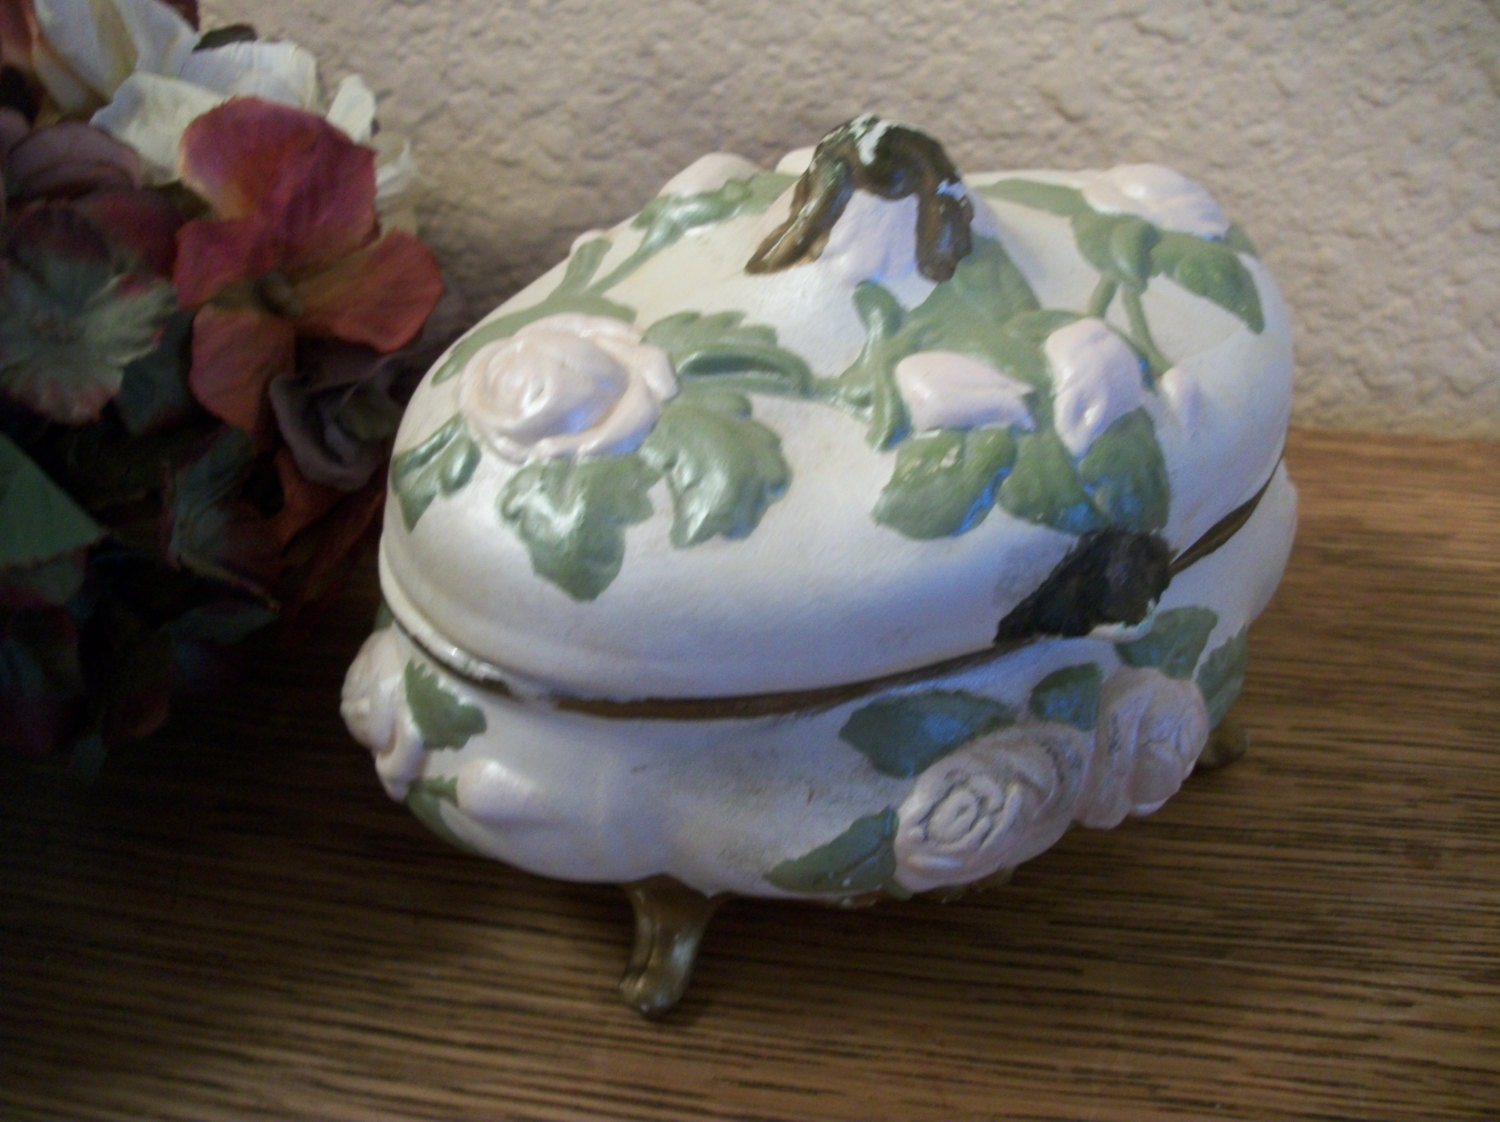 Dresser Top Jewelry Box White Ceramic with  Pink Roses and Green Leaves Gold Trim Shabby Cottage Vintage 1960's Handcrafted Trinket Dish - SpringJewelryThings